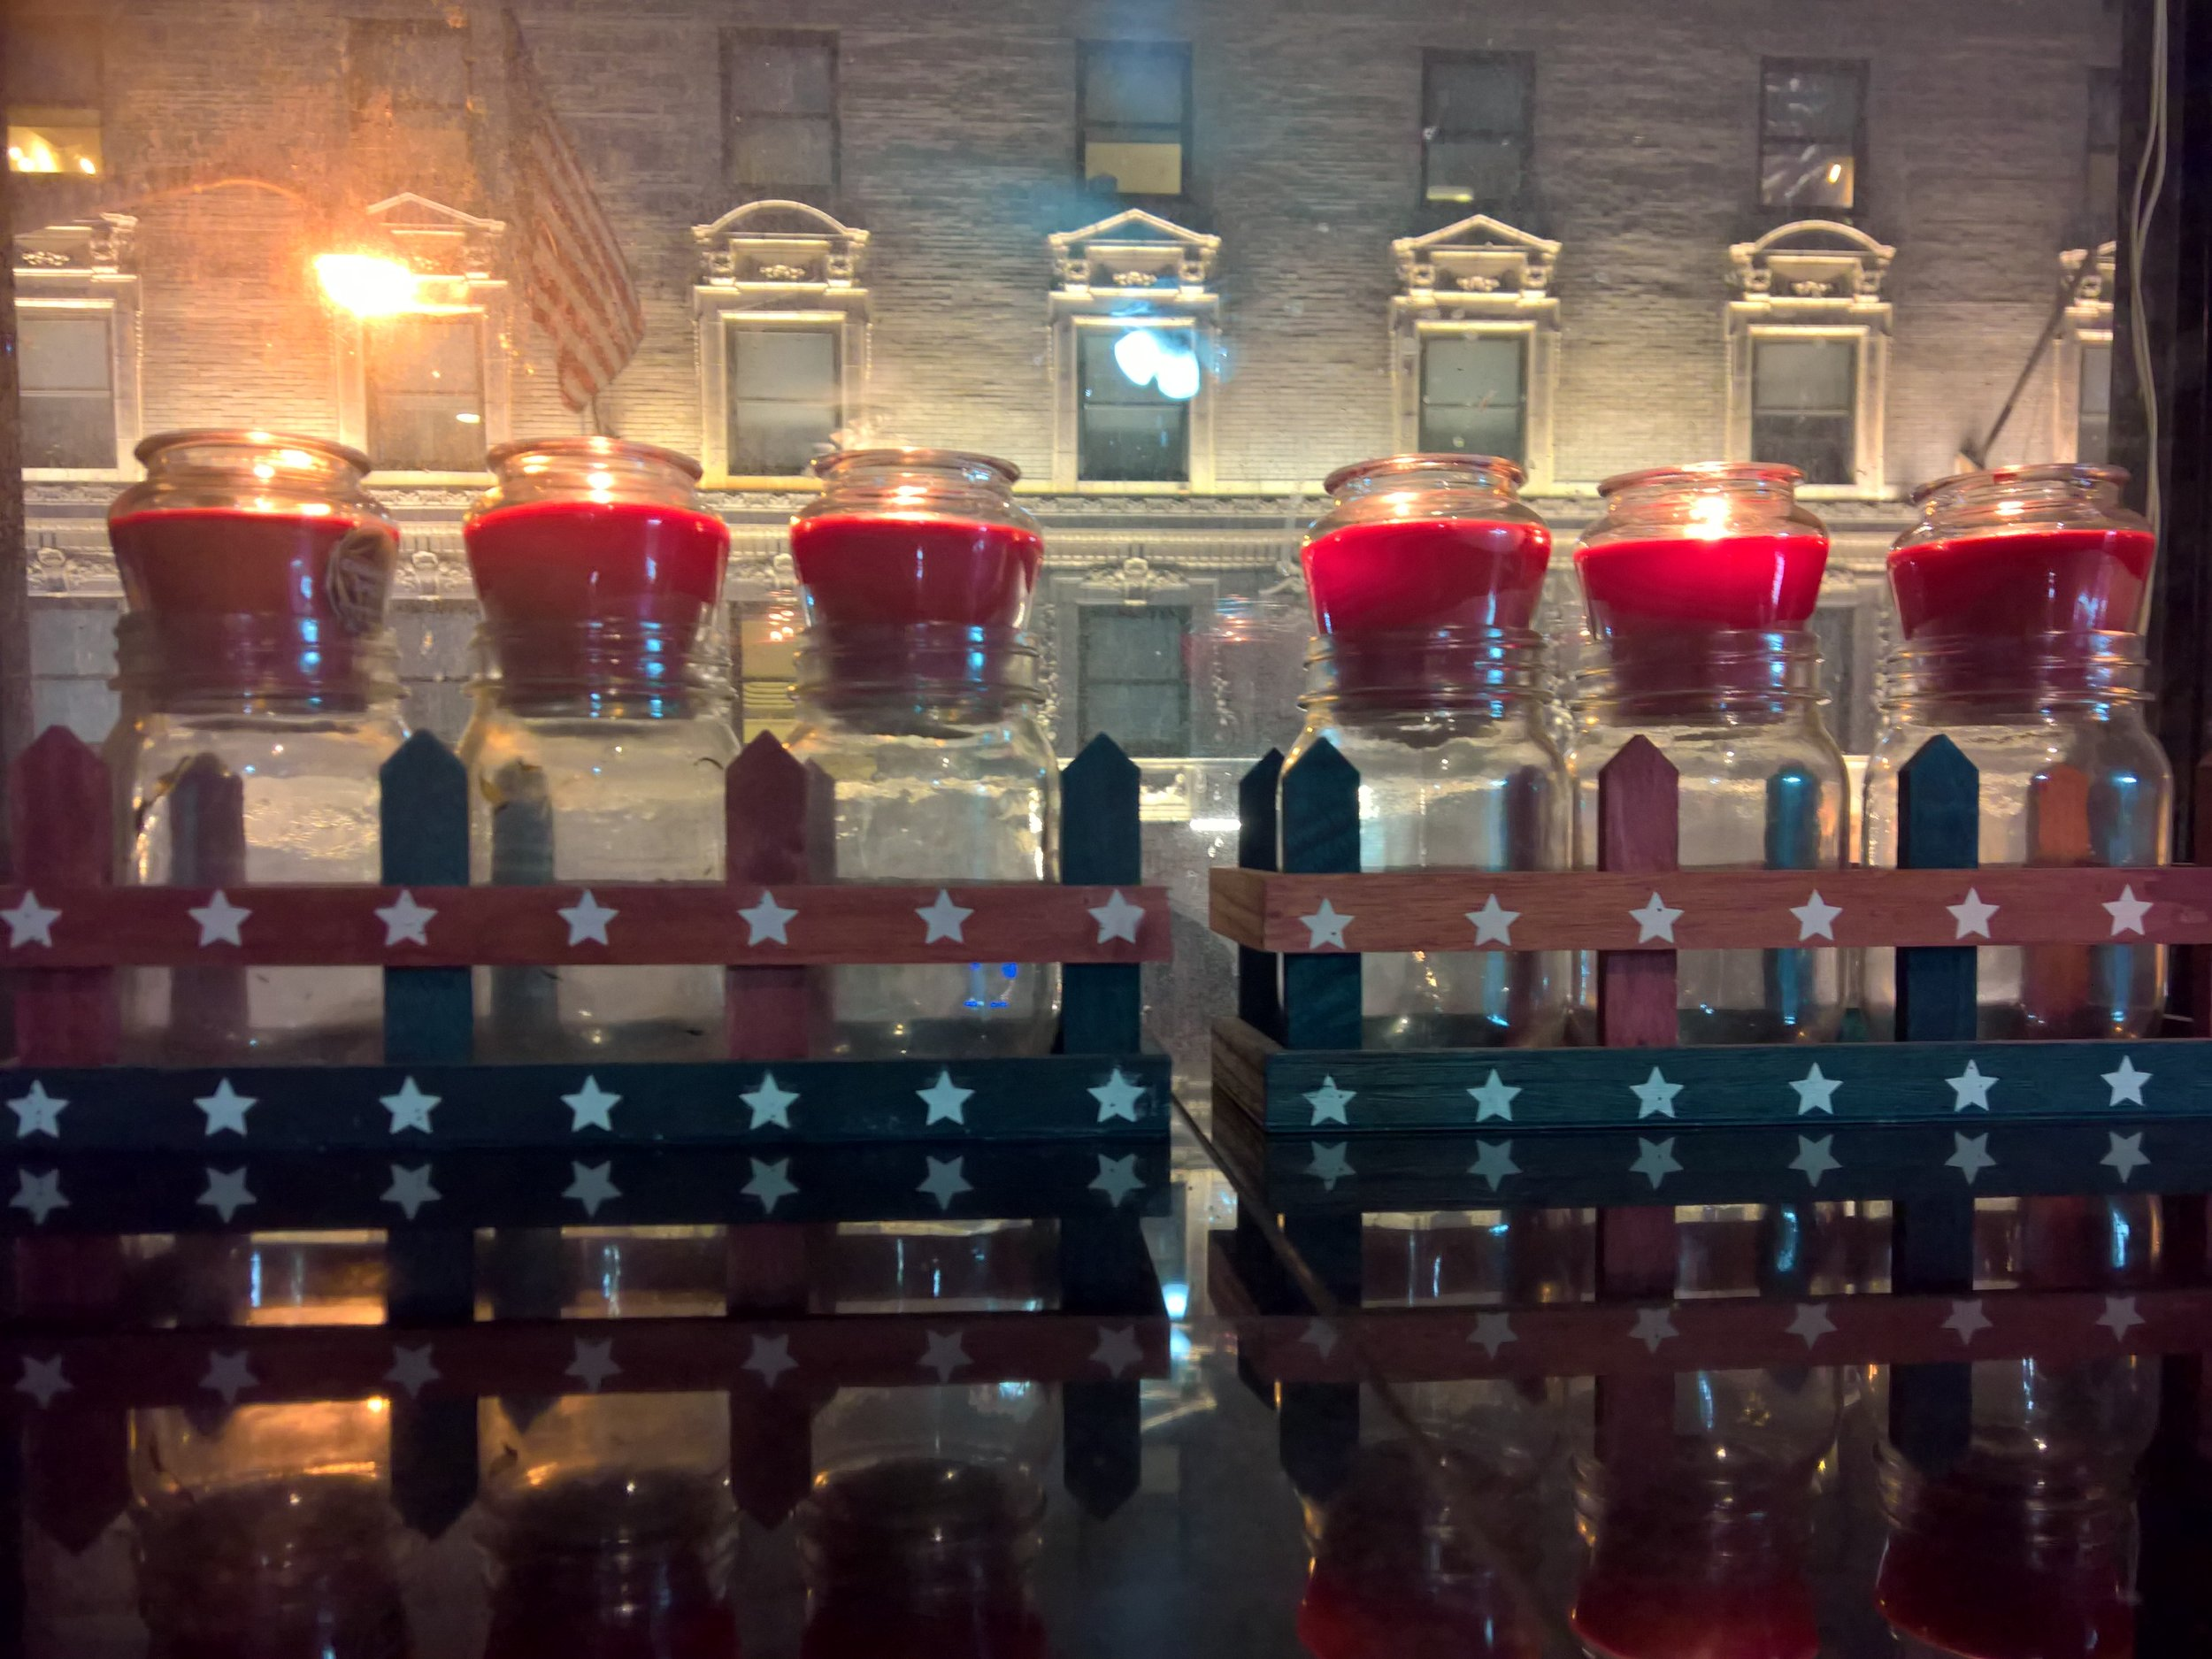 46th_street_clubhouse_candles.jpg